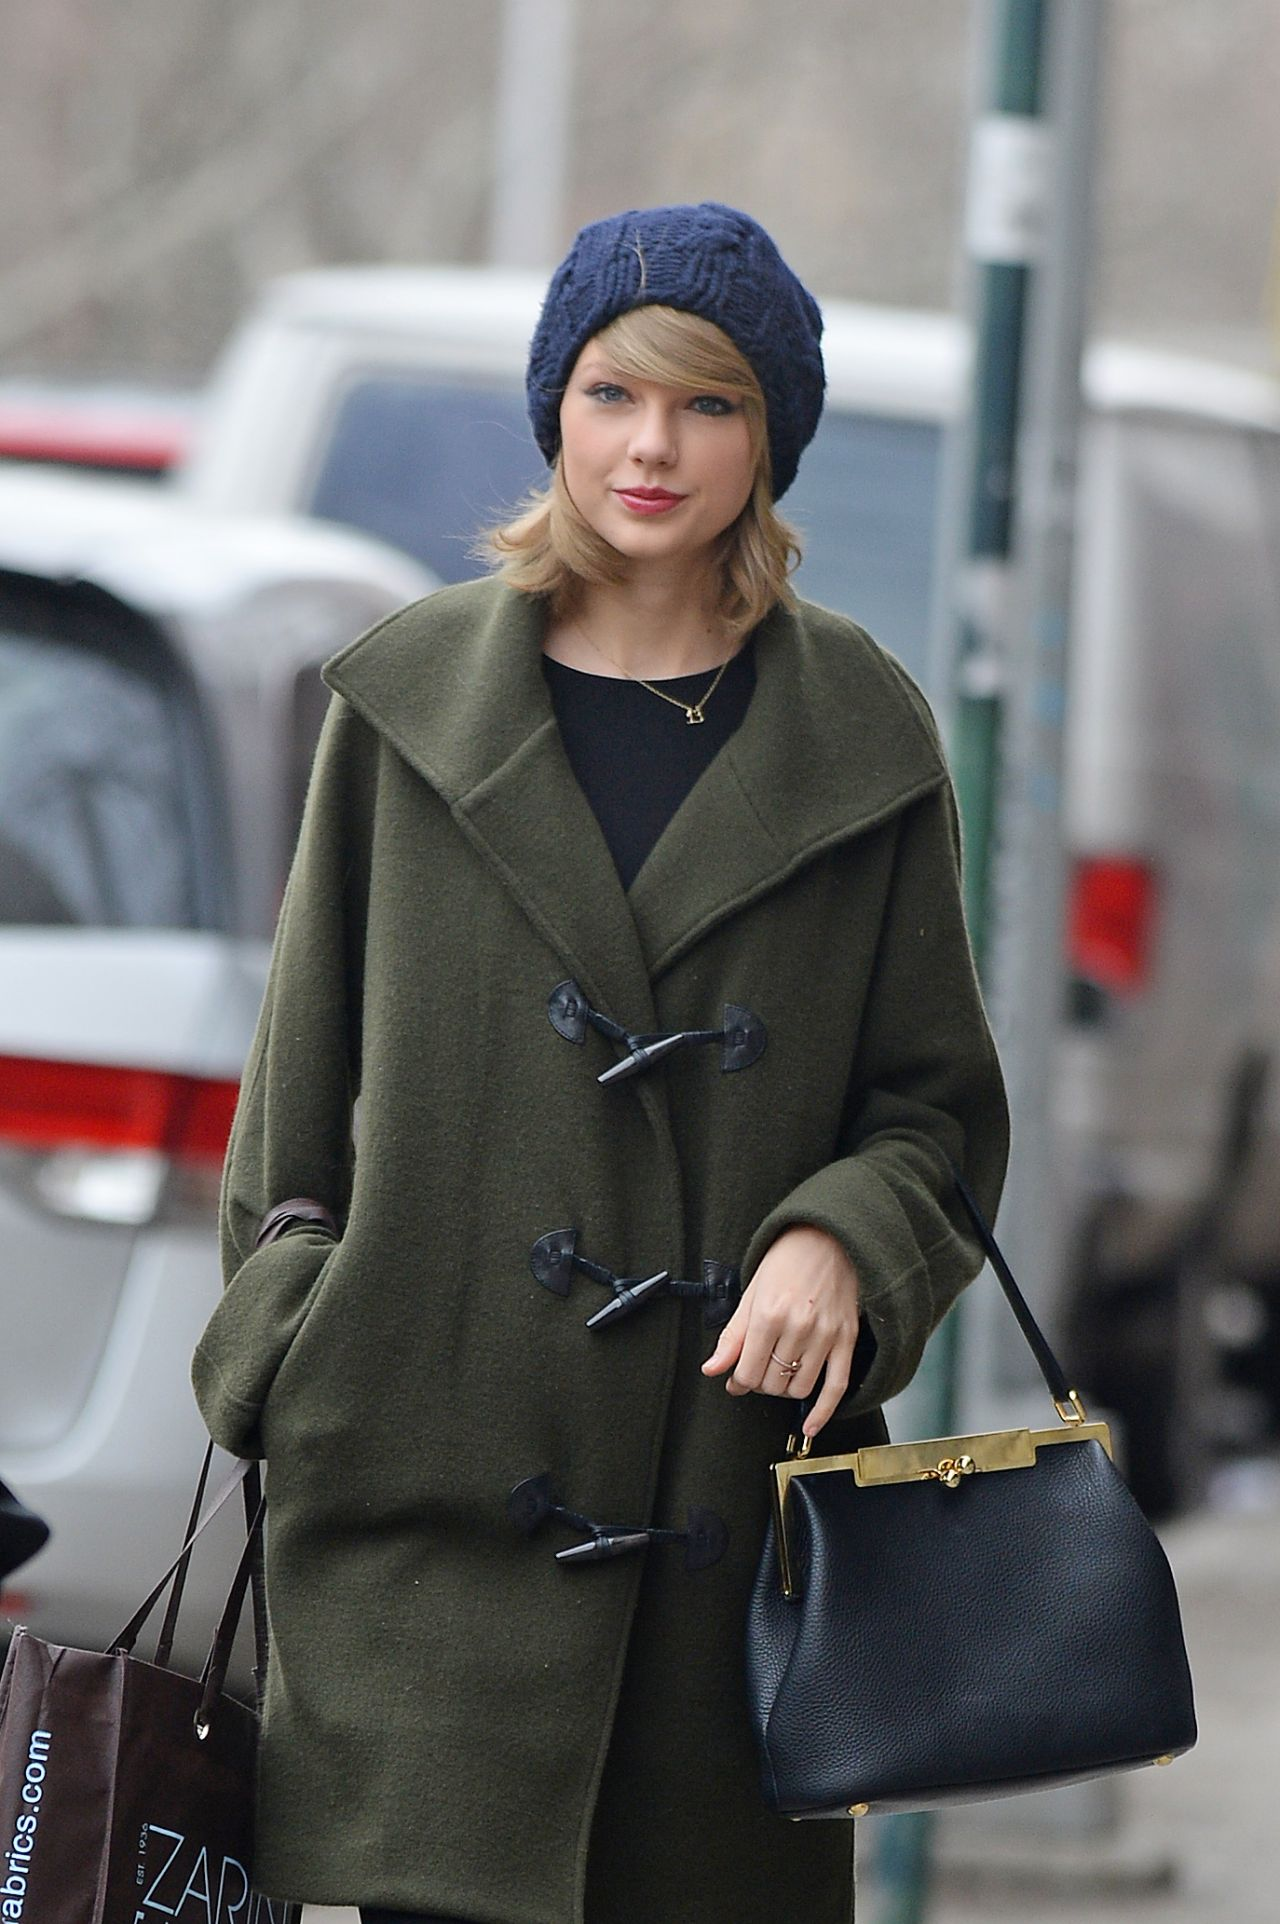 Taylor Swift In Soho New York City March 2014